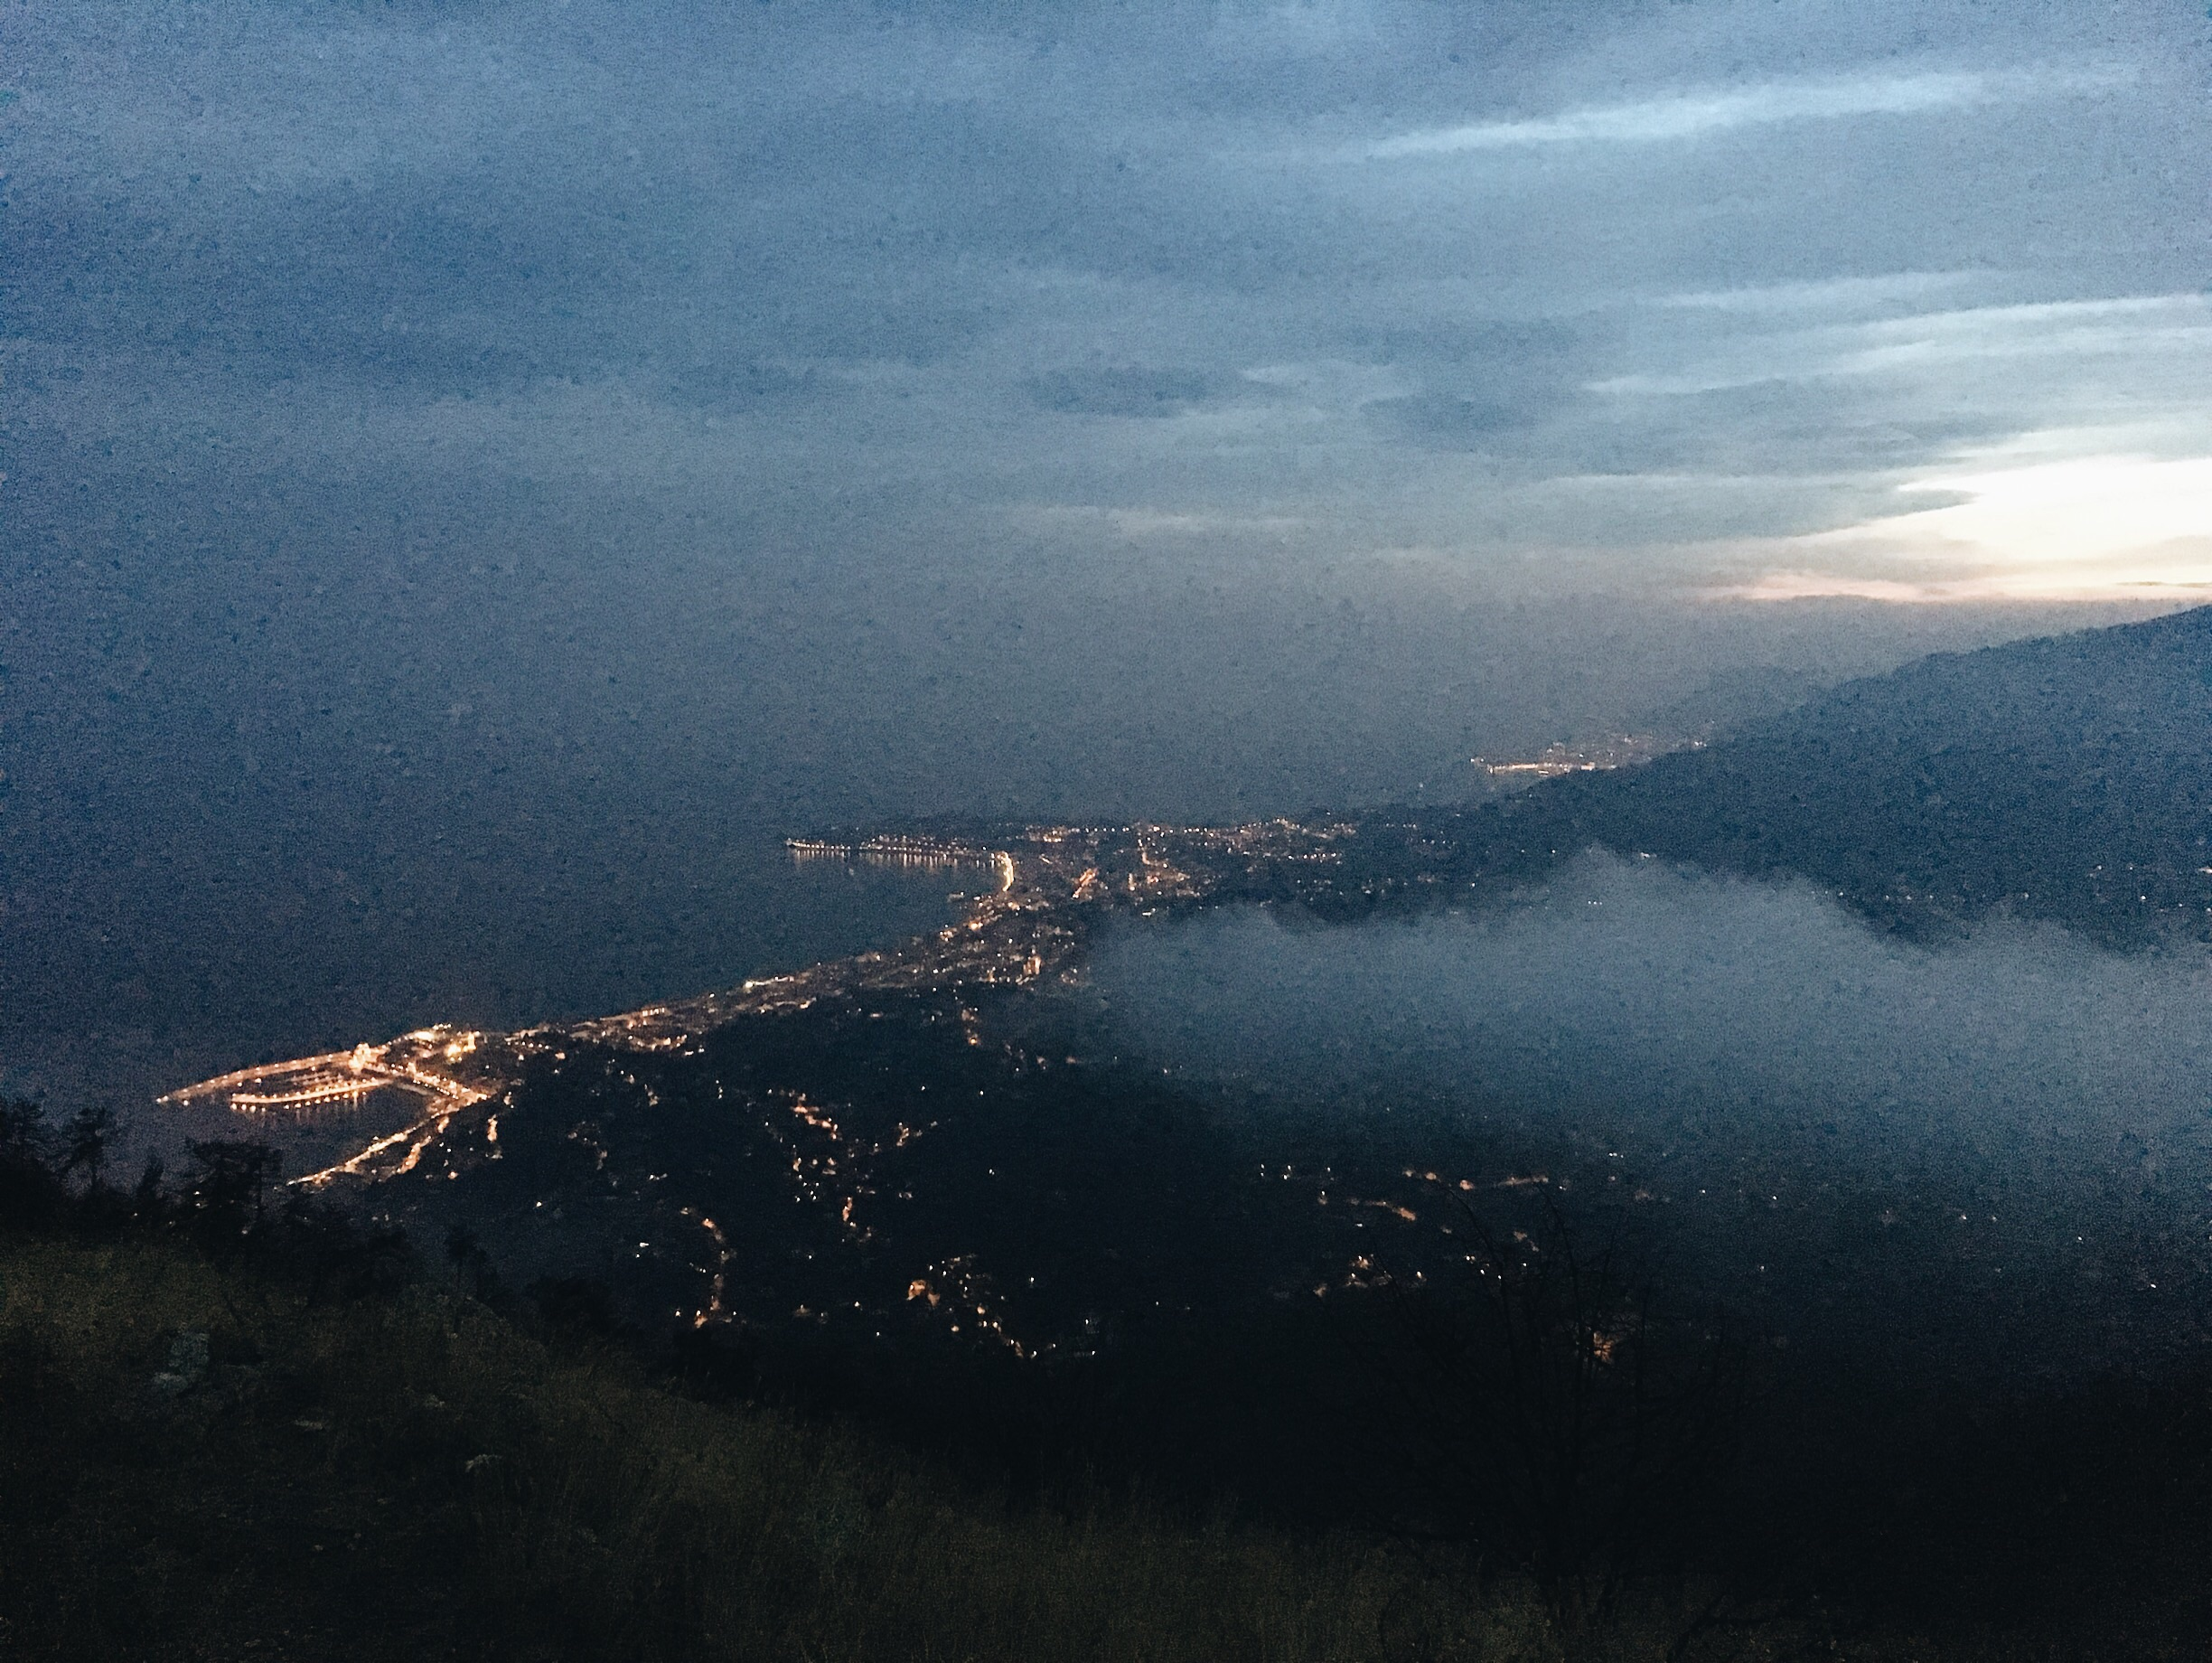 The clouds lift at 9pm and we see Menton and the sea finally!